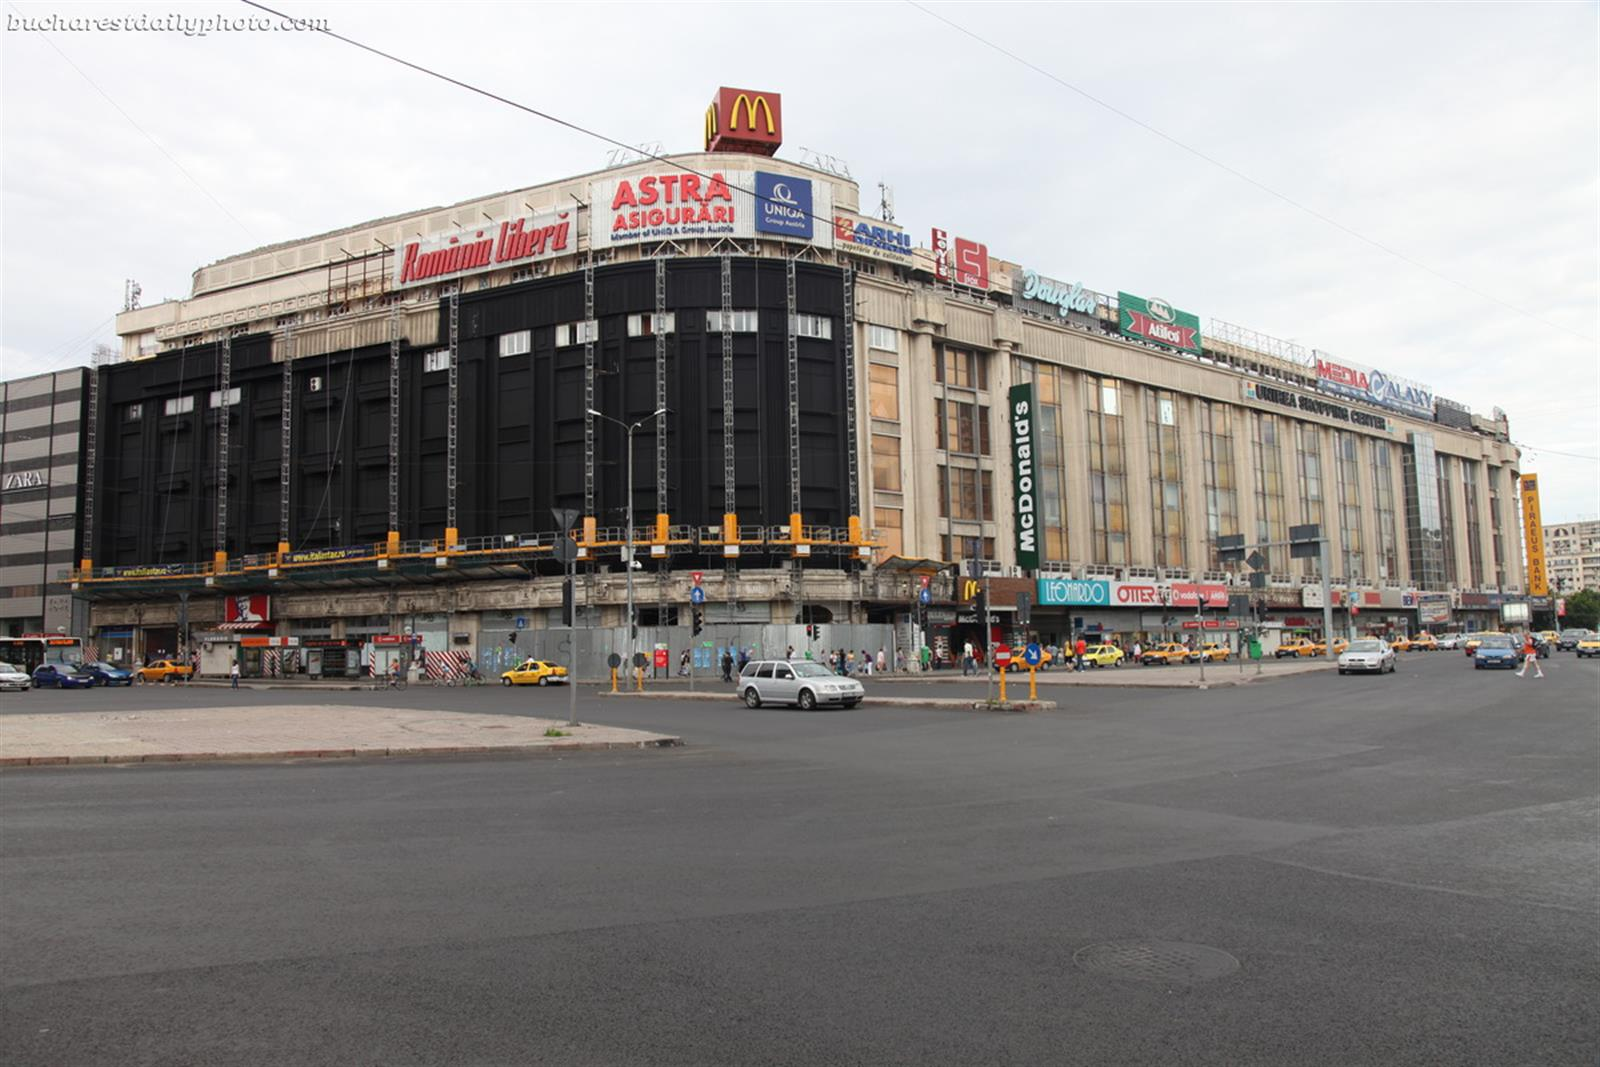 a-guide-to-bucharest image1096